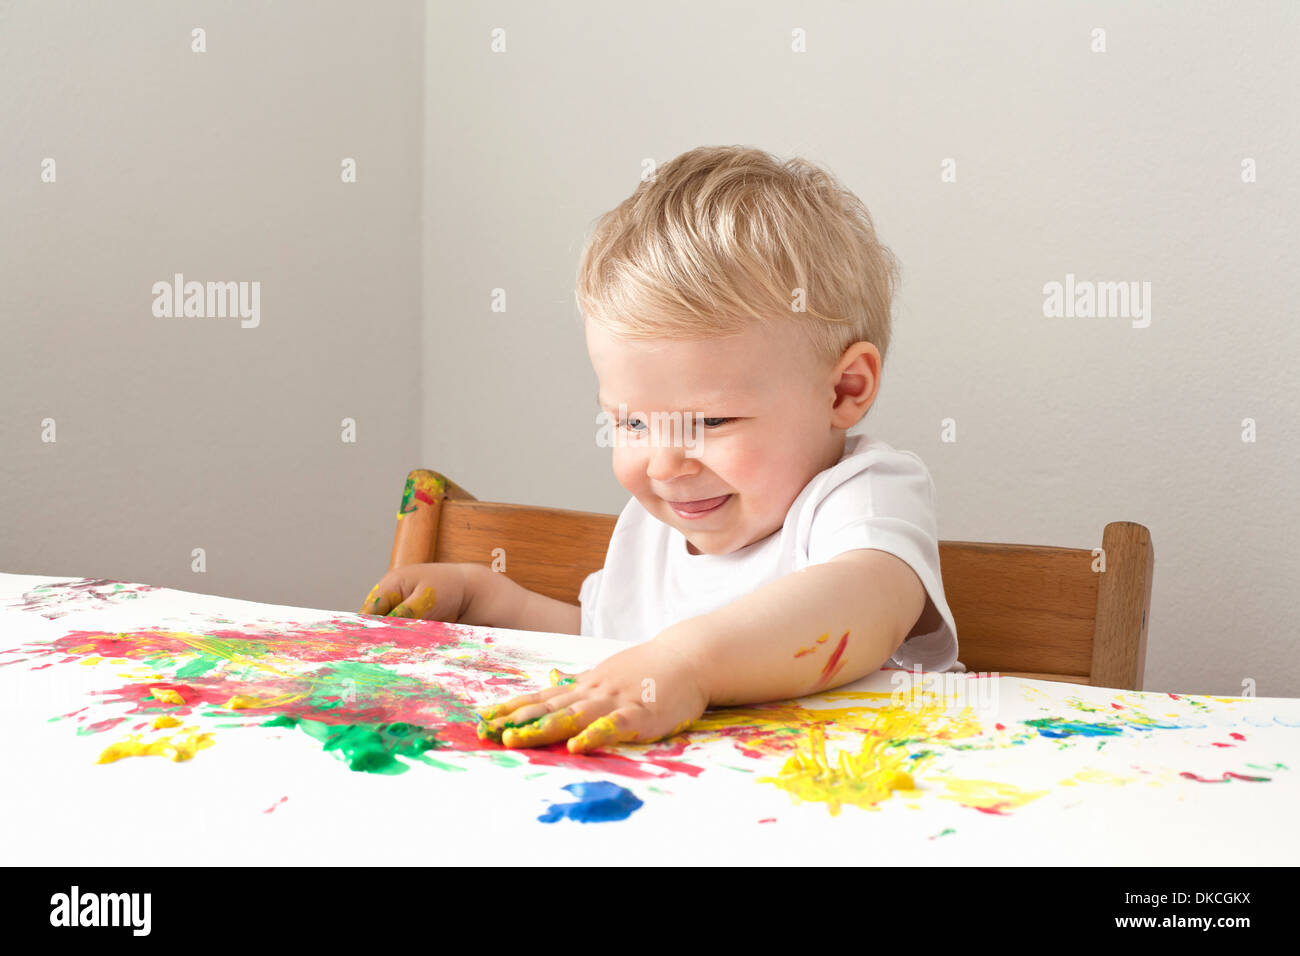 Little boy playing with finger paints - Stock Image